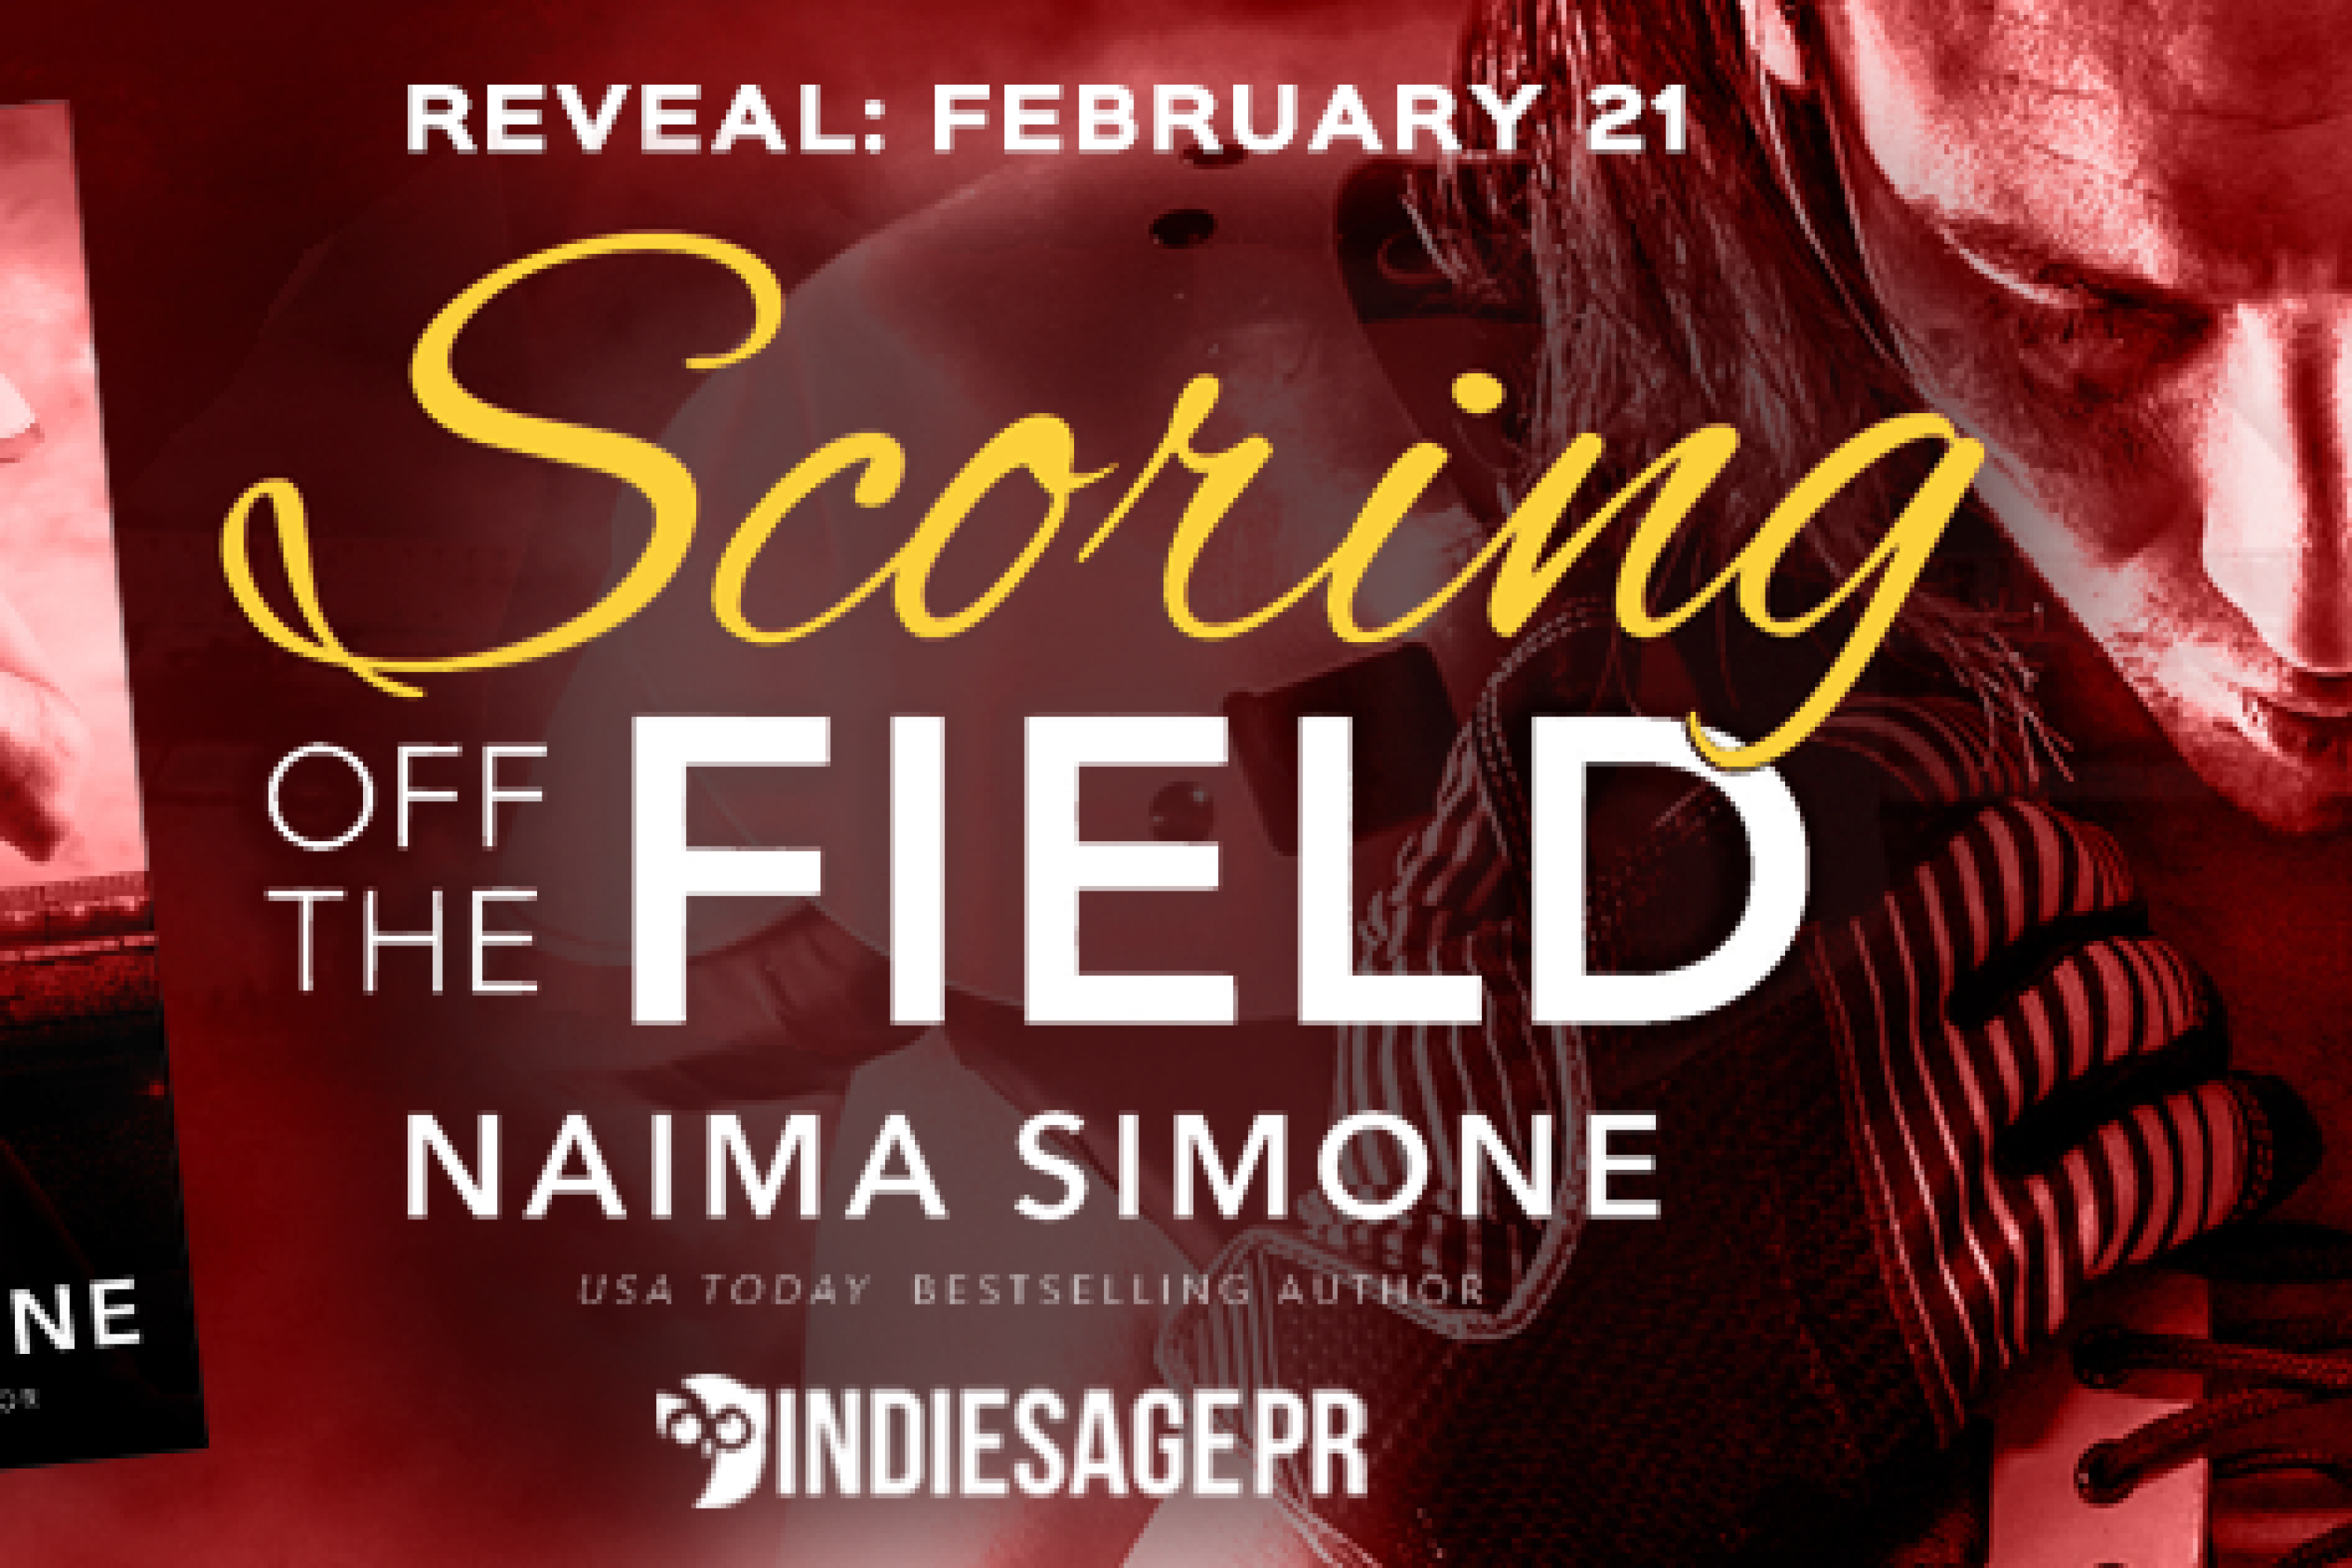 Cover Reveal: Scoring Off the Field by Naima Simone